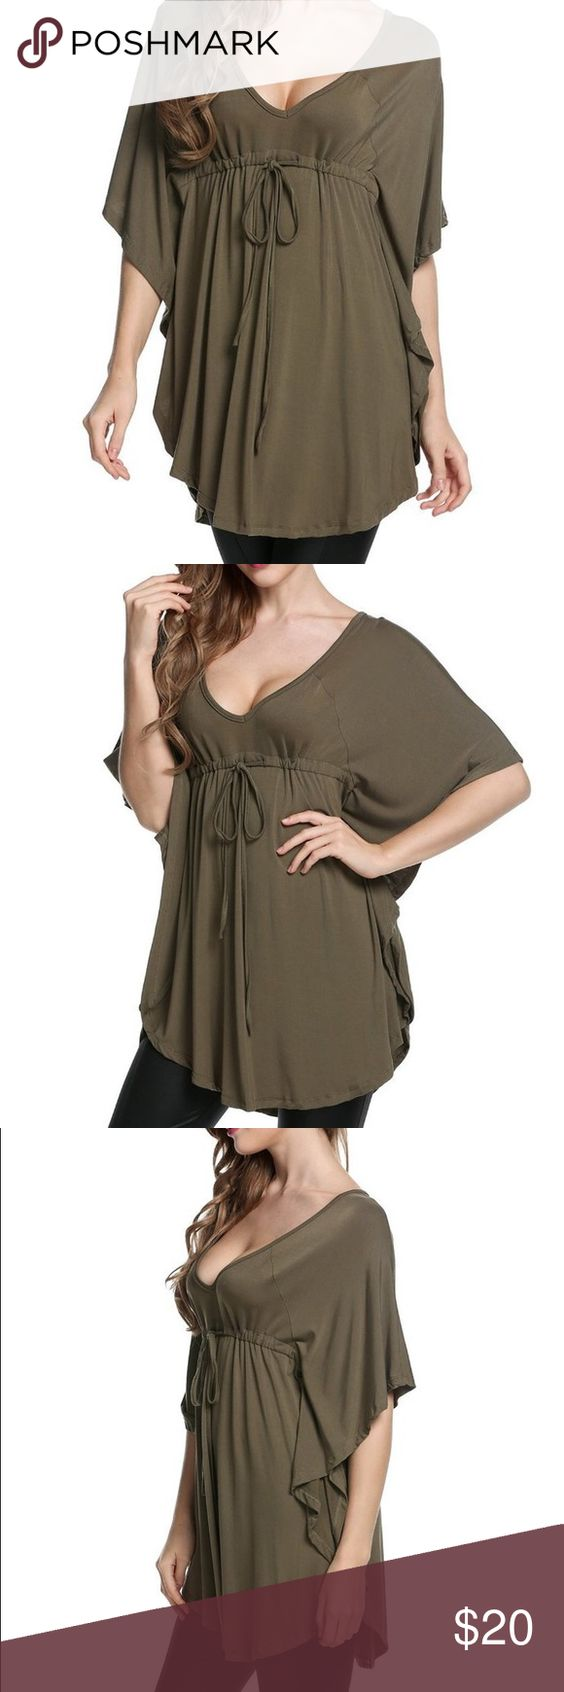 New Plunge V Neck Batwing Drawstring Waist Tunic Green, Batwing Sleeve, V-neck, Drawstring Empire Waist. Material: 97% Polyester and 3% Spandex. Measurements: XL(16) ---Raglan Sleeve 14.4 inch ---Chest 38.2-44.5 inch ---Middle Back Length 32.4 inch Tops Tunics